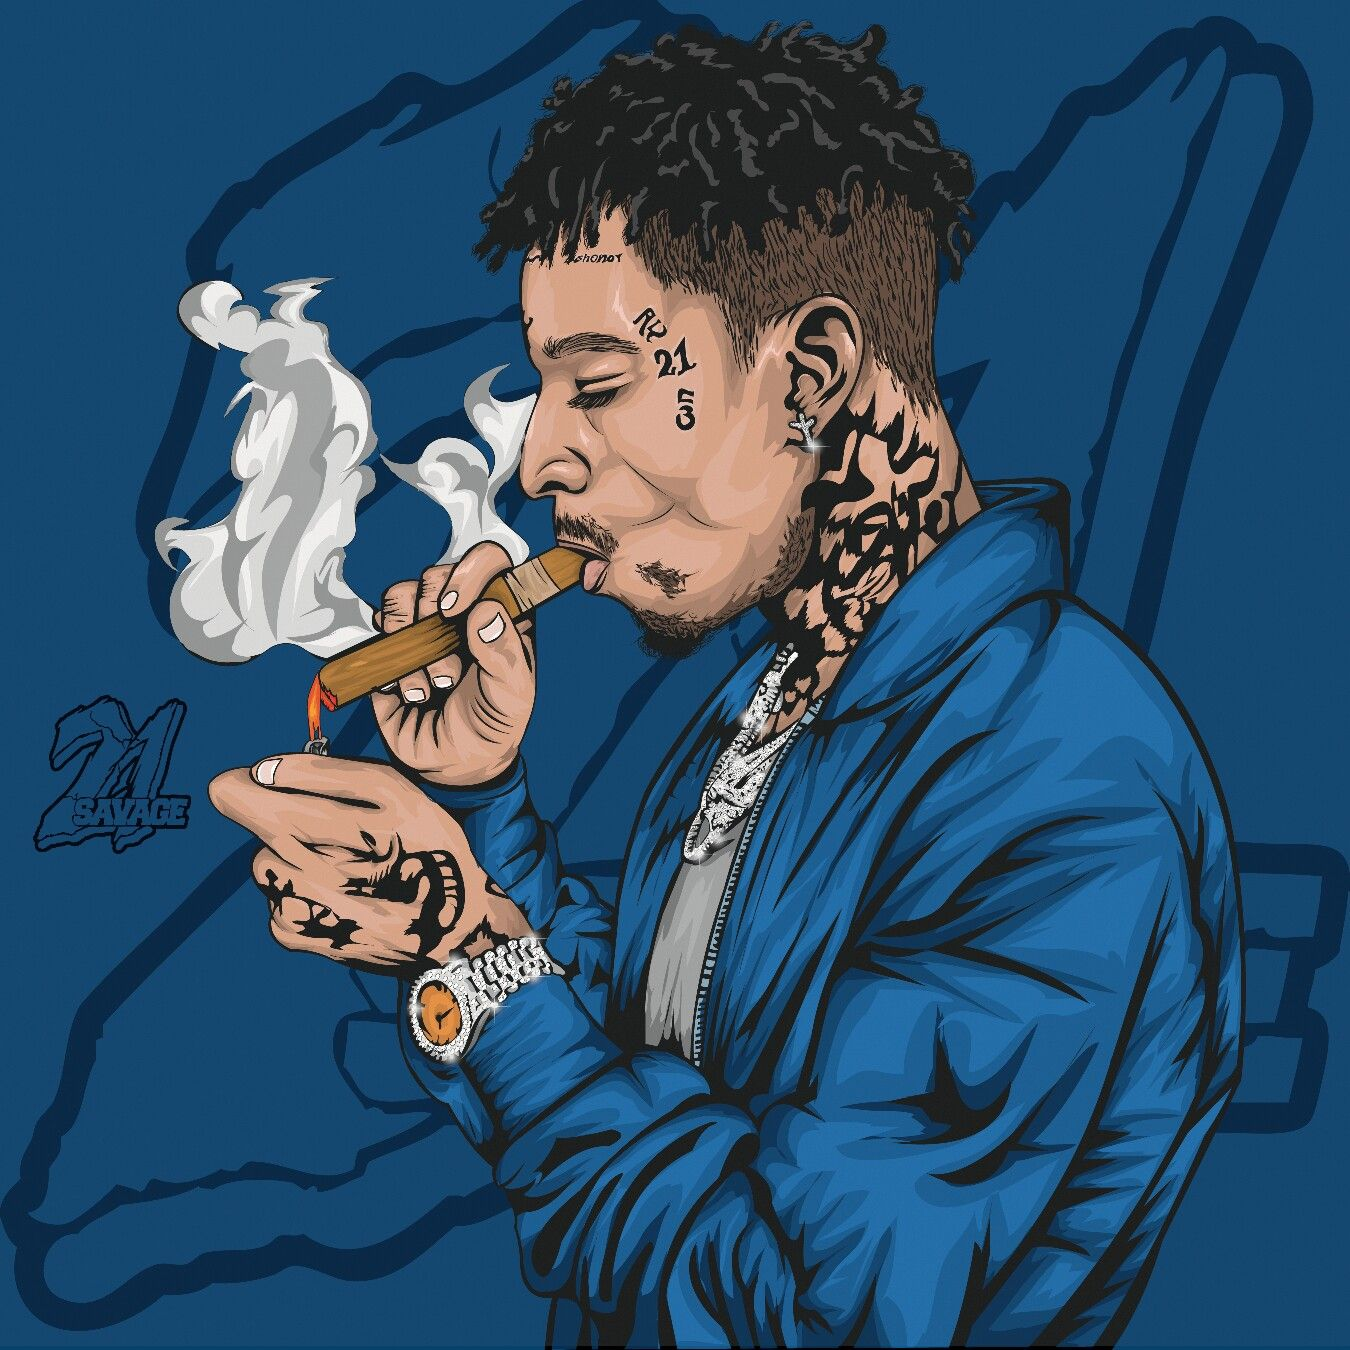 21 Savage Art by paulkawira Rapper art, Swag art